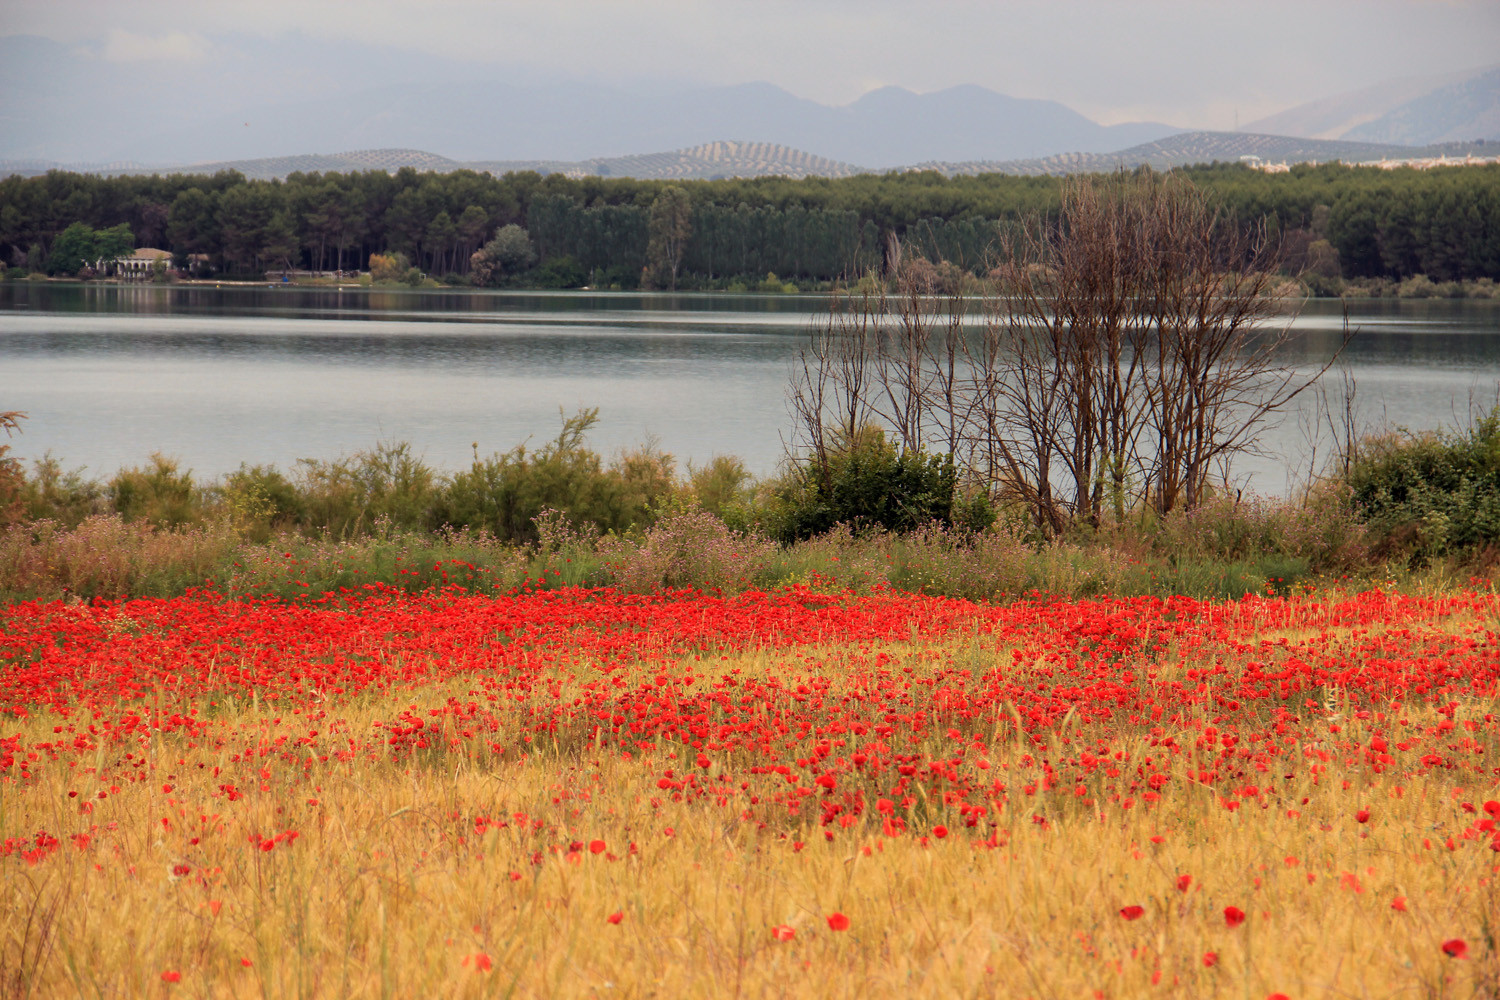 Corn Poppy Field near Lake Cubillas